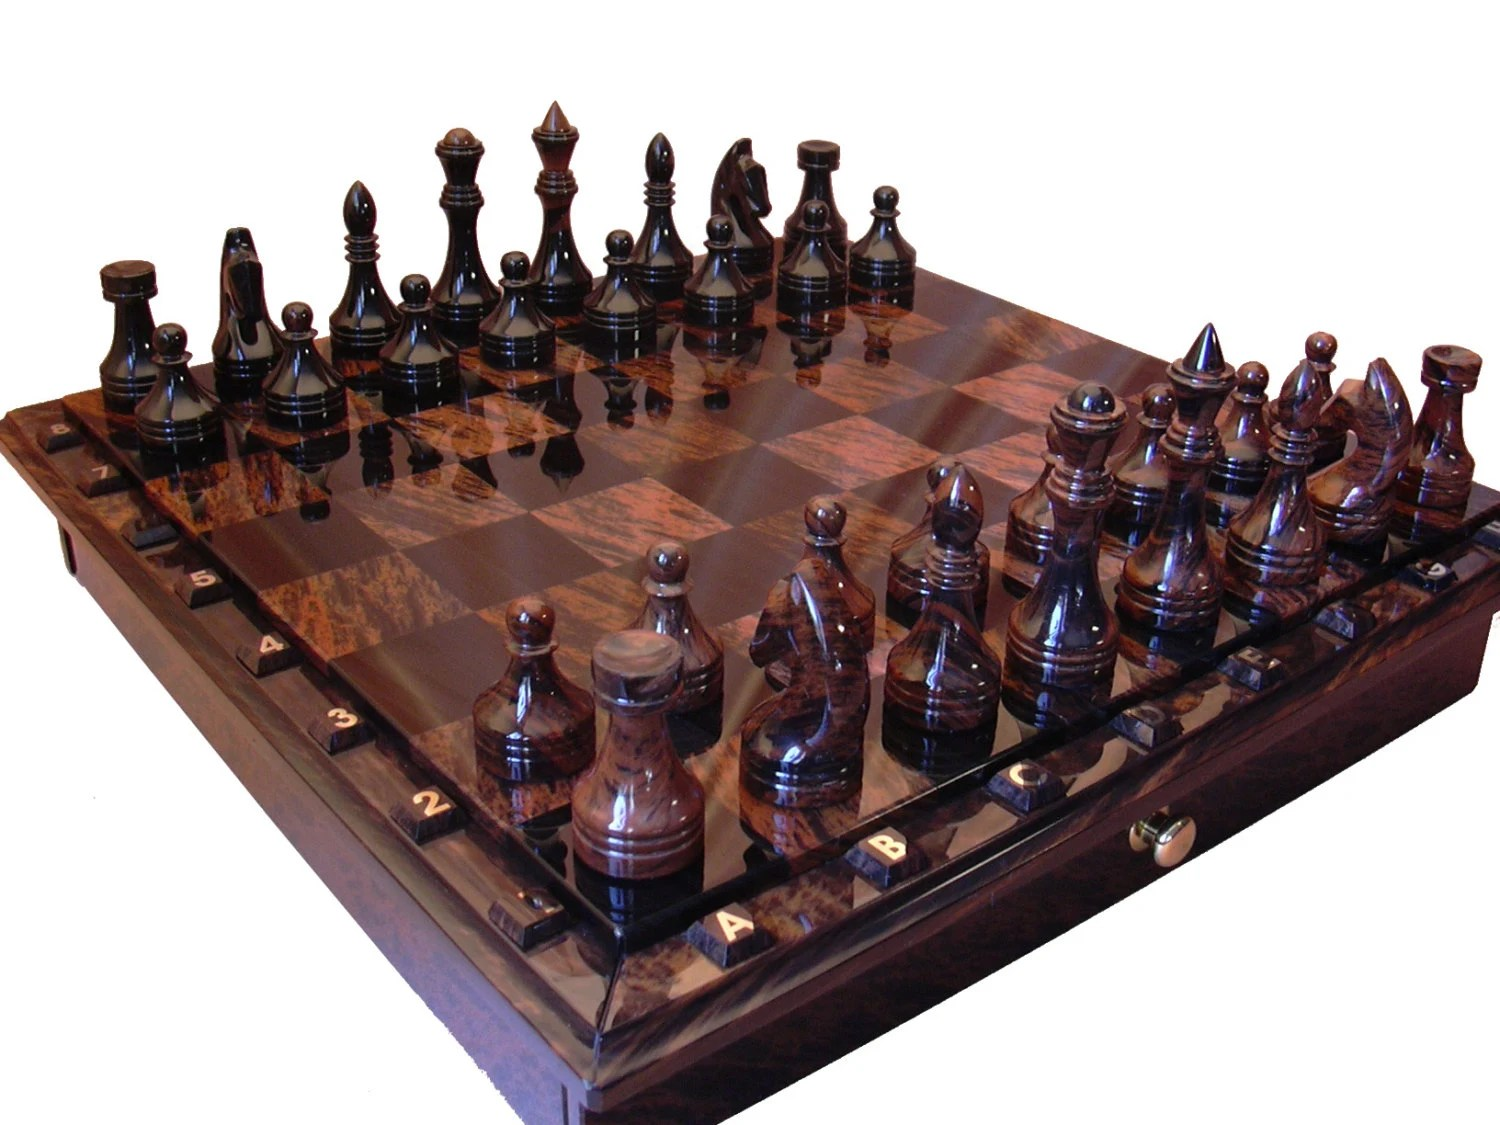 Outdoor Schachfiguren Black And Brown Obsidian Chess Set Board Game By